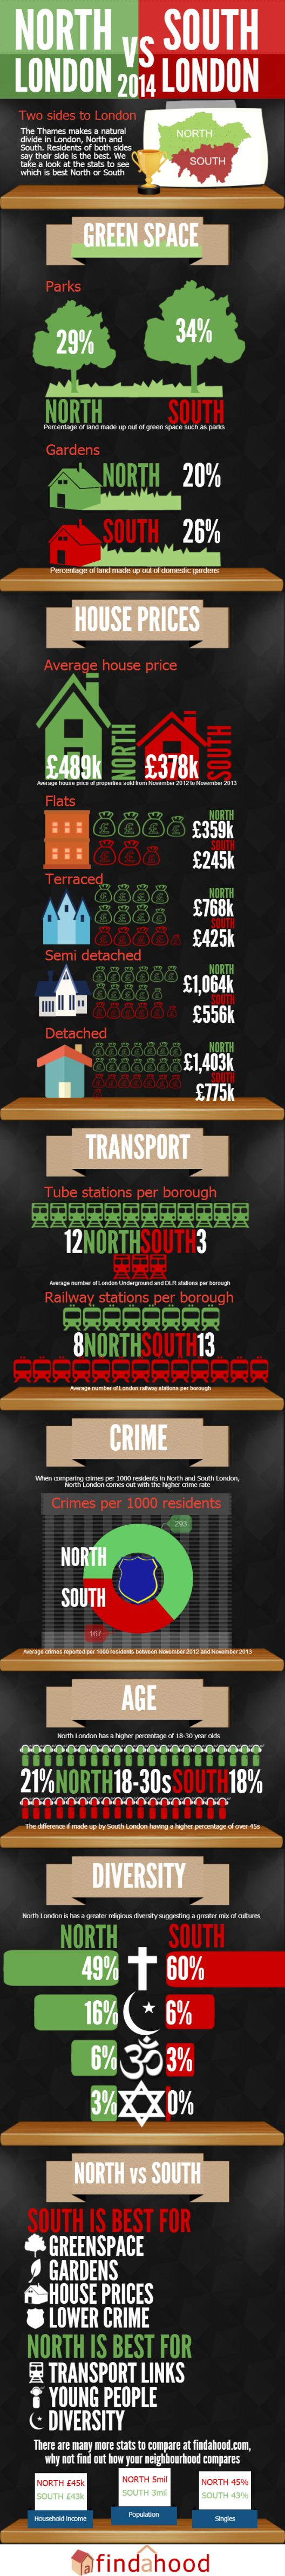 Infographic: North vs South London in numbers